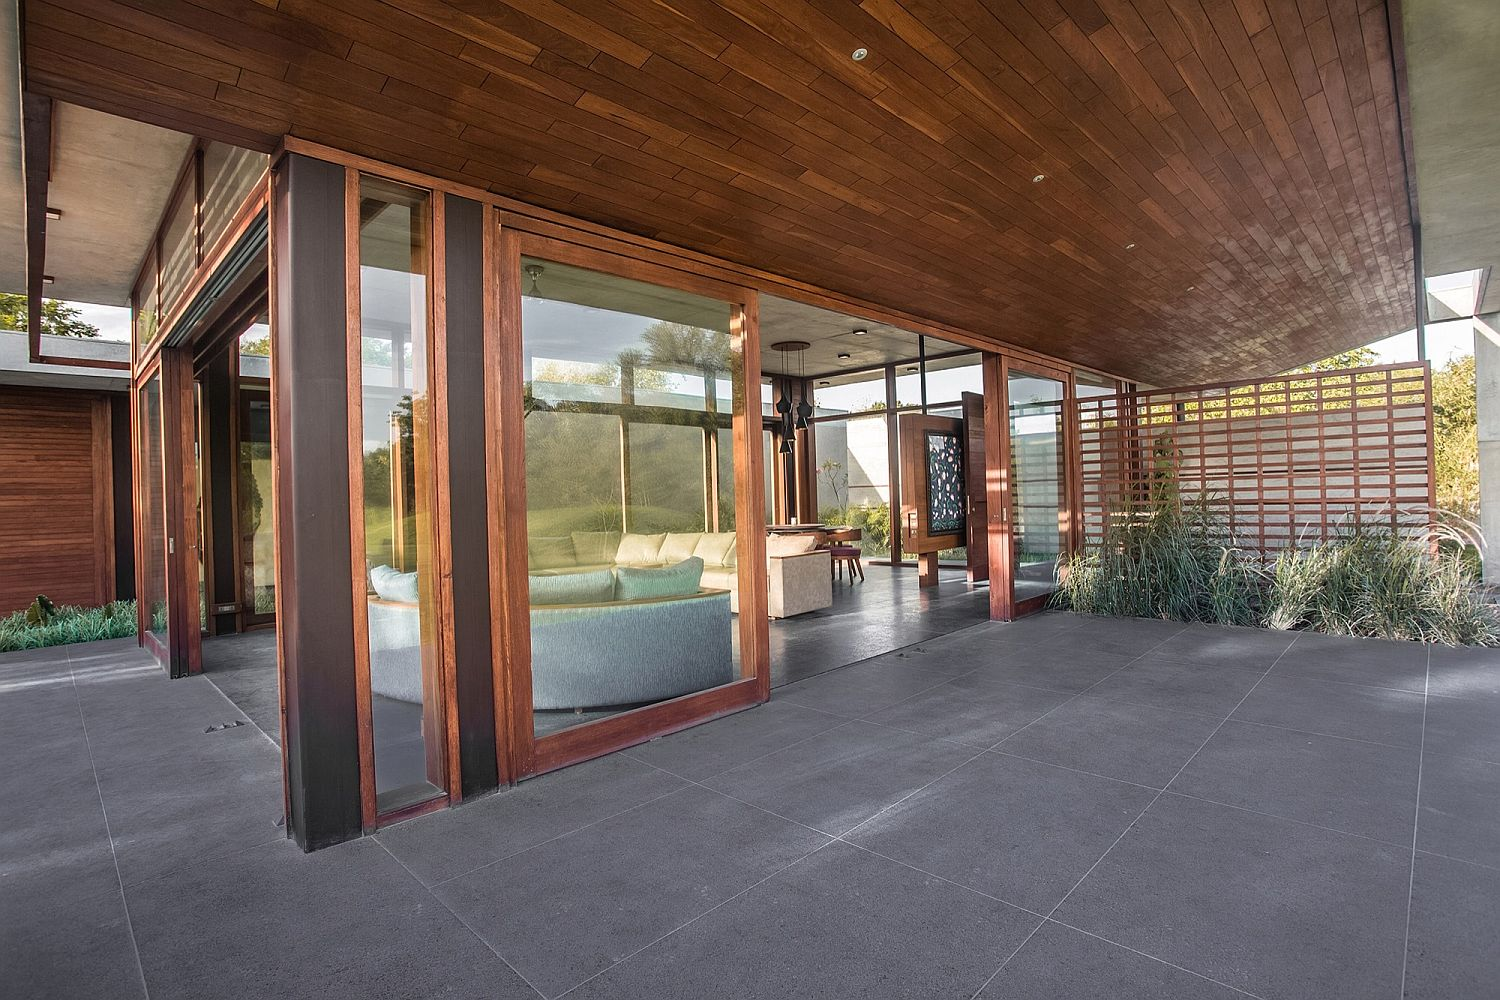 Wood, granite and glass style a relaxing guesthouse in India